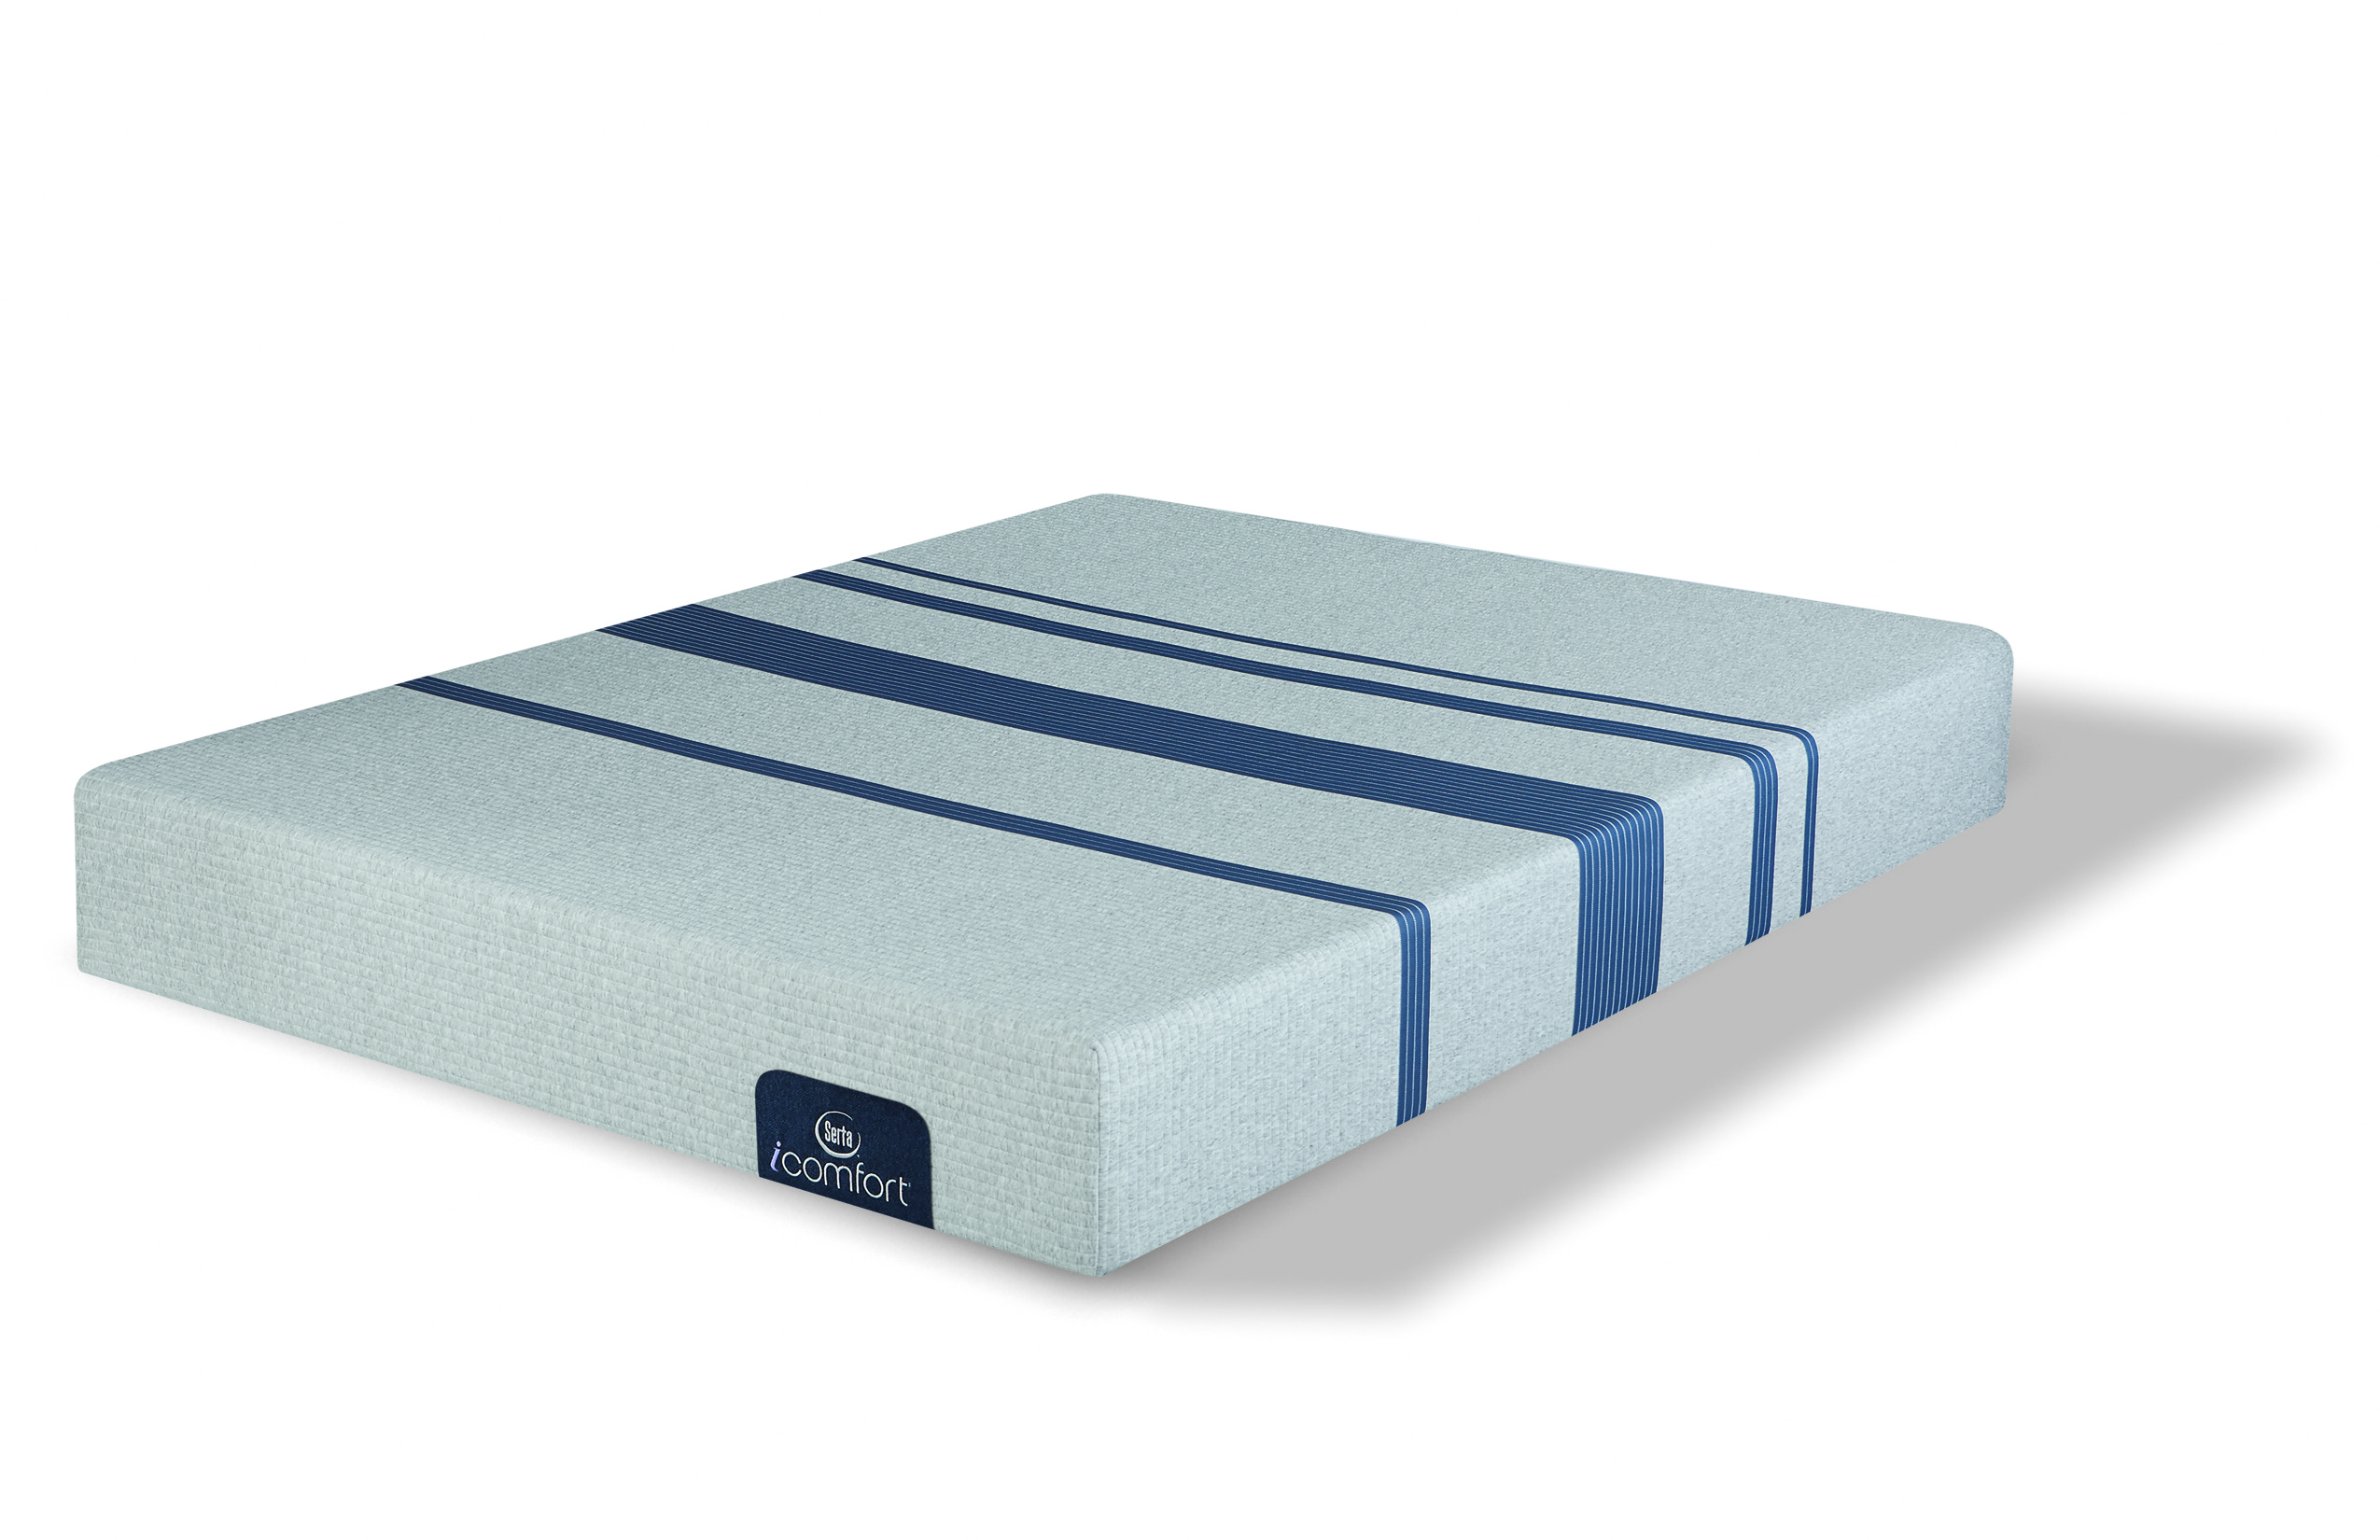 serta mattress king shop shld closeout prodigy getimage icomfort url your plush